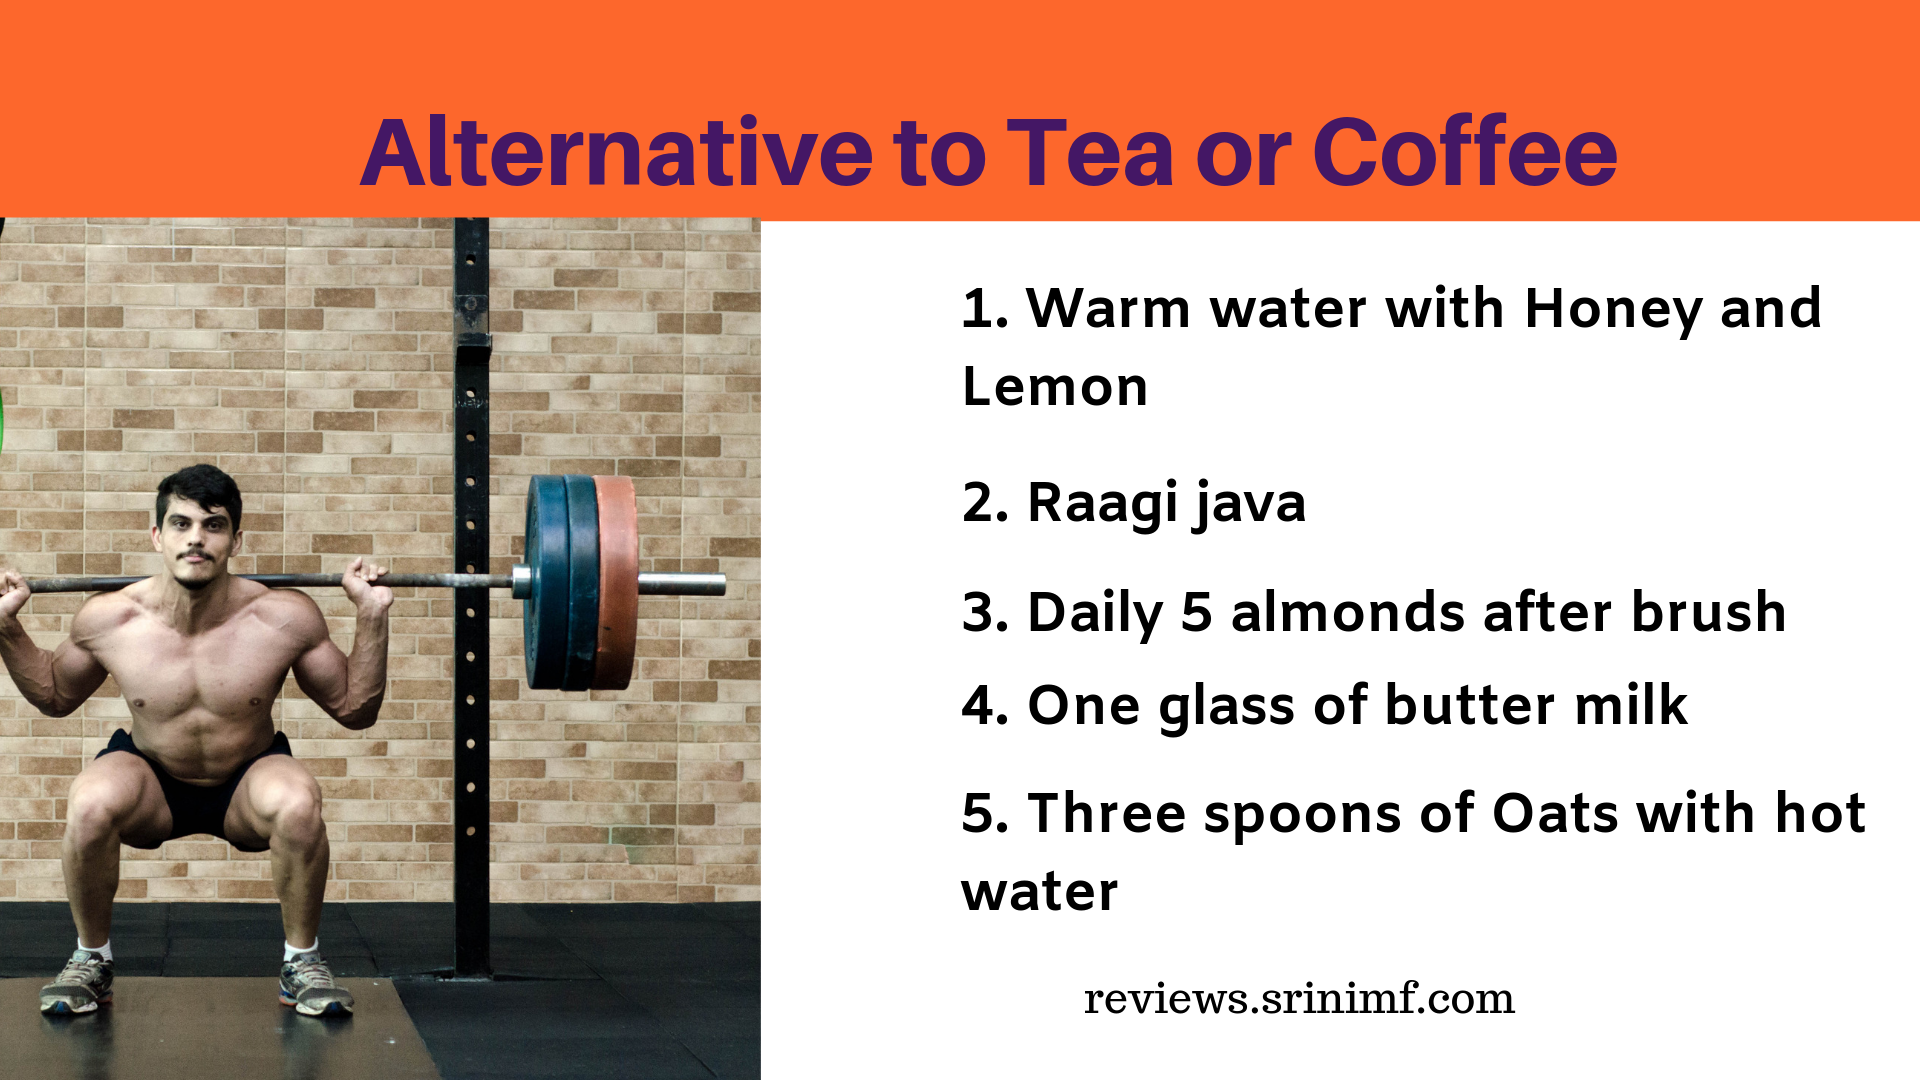 Alternative to Tea or Coffee